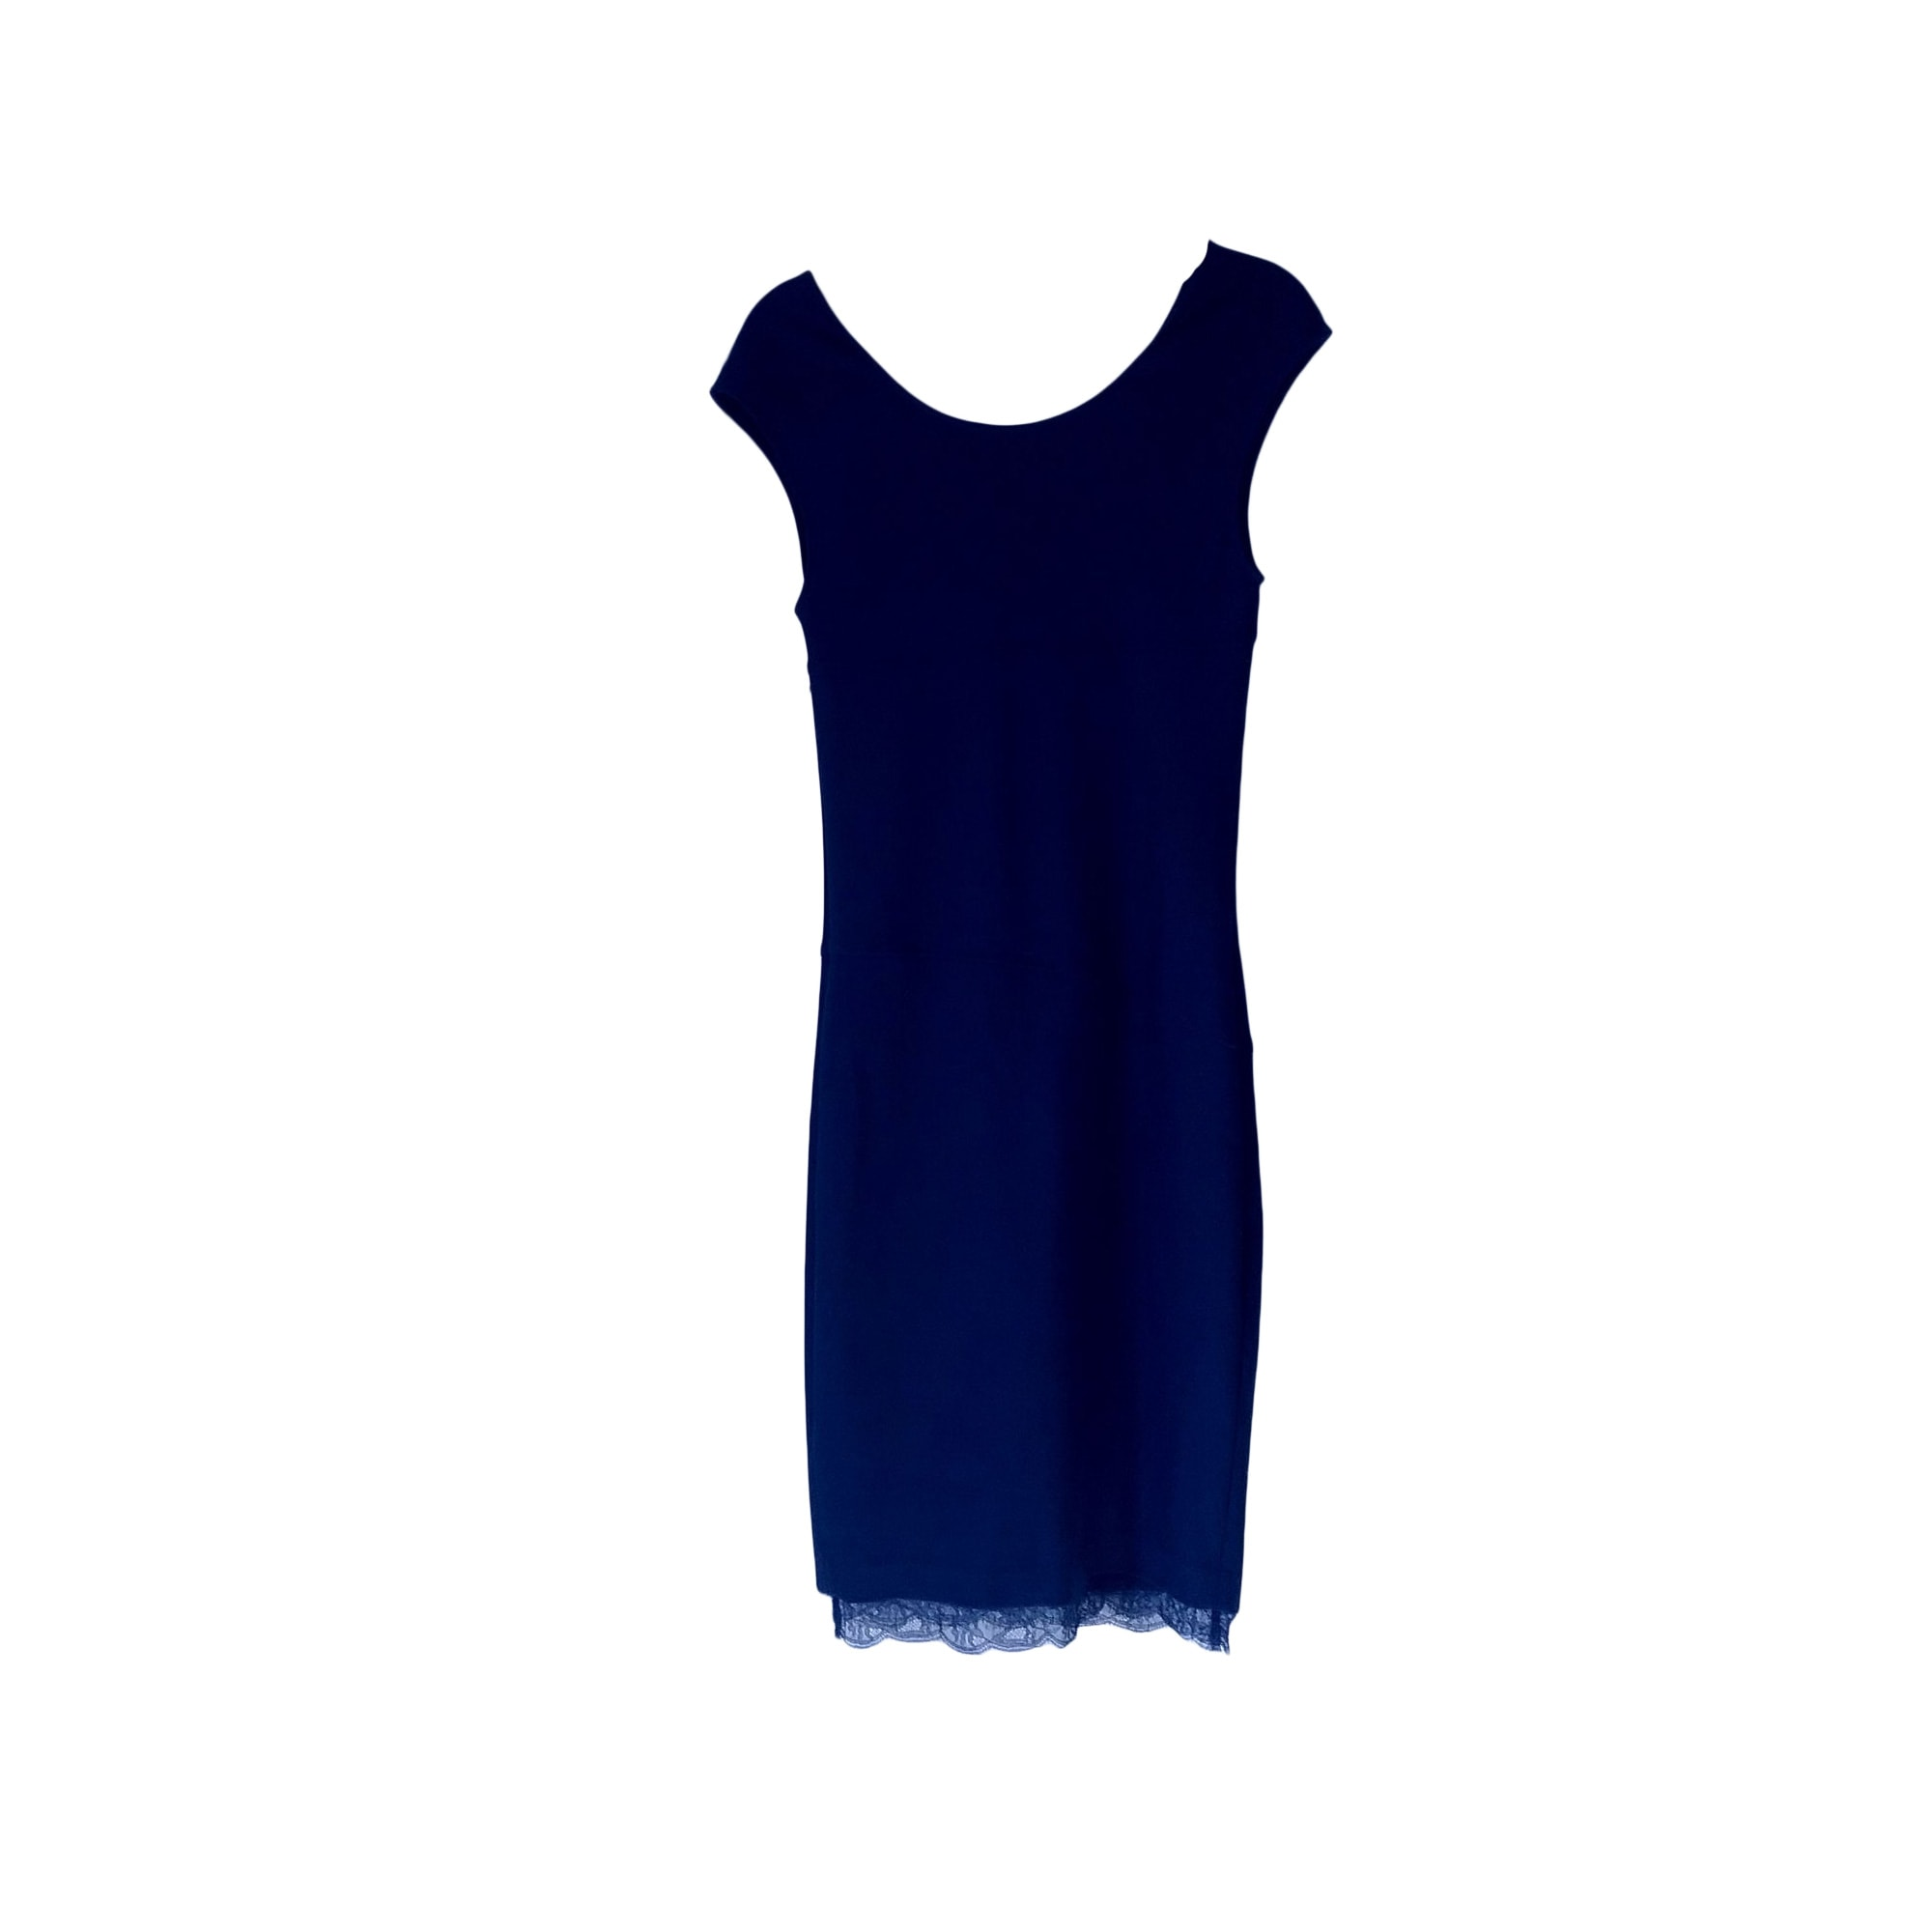 Mini-Kleid LIU JO Blau, marineblau, türkisblau